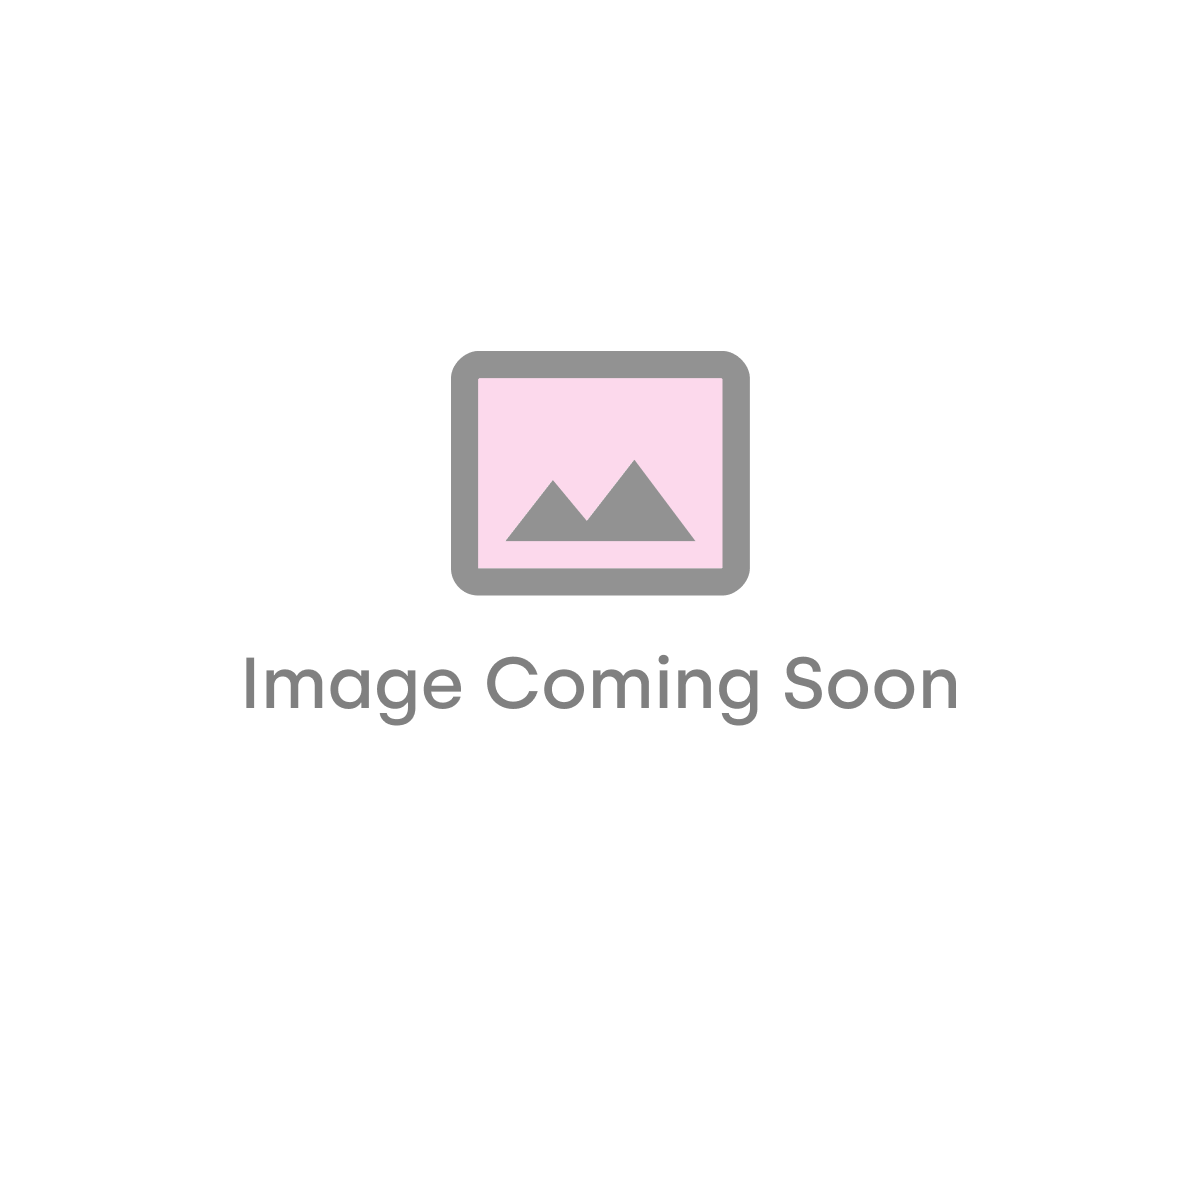 Lusso Panel Essentials 5mm U Trim Silver - 2700mm (19561)